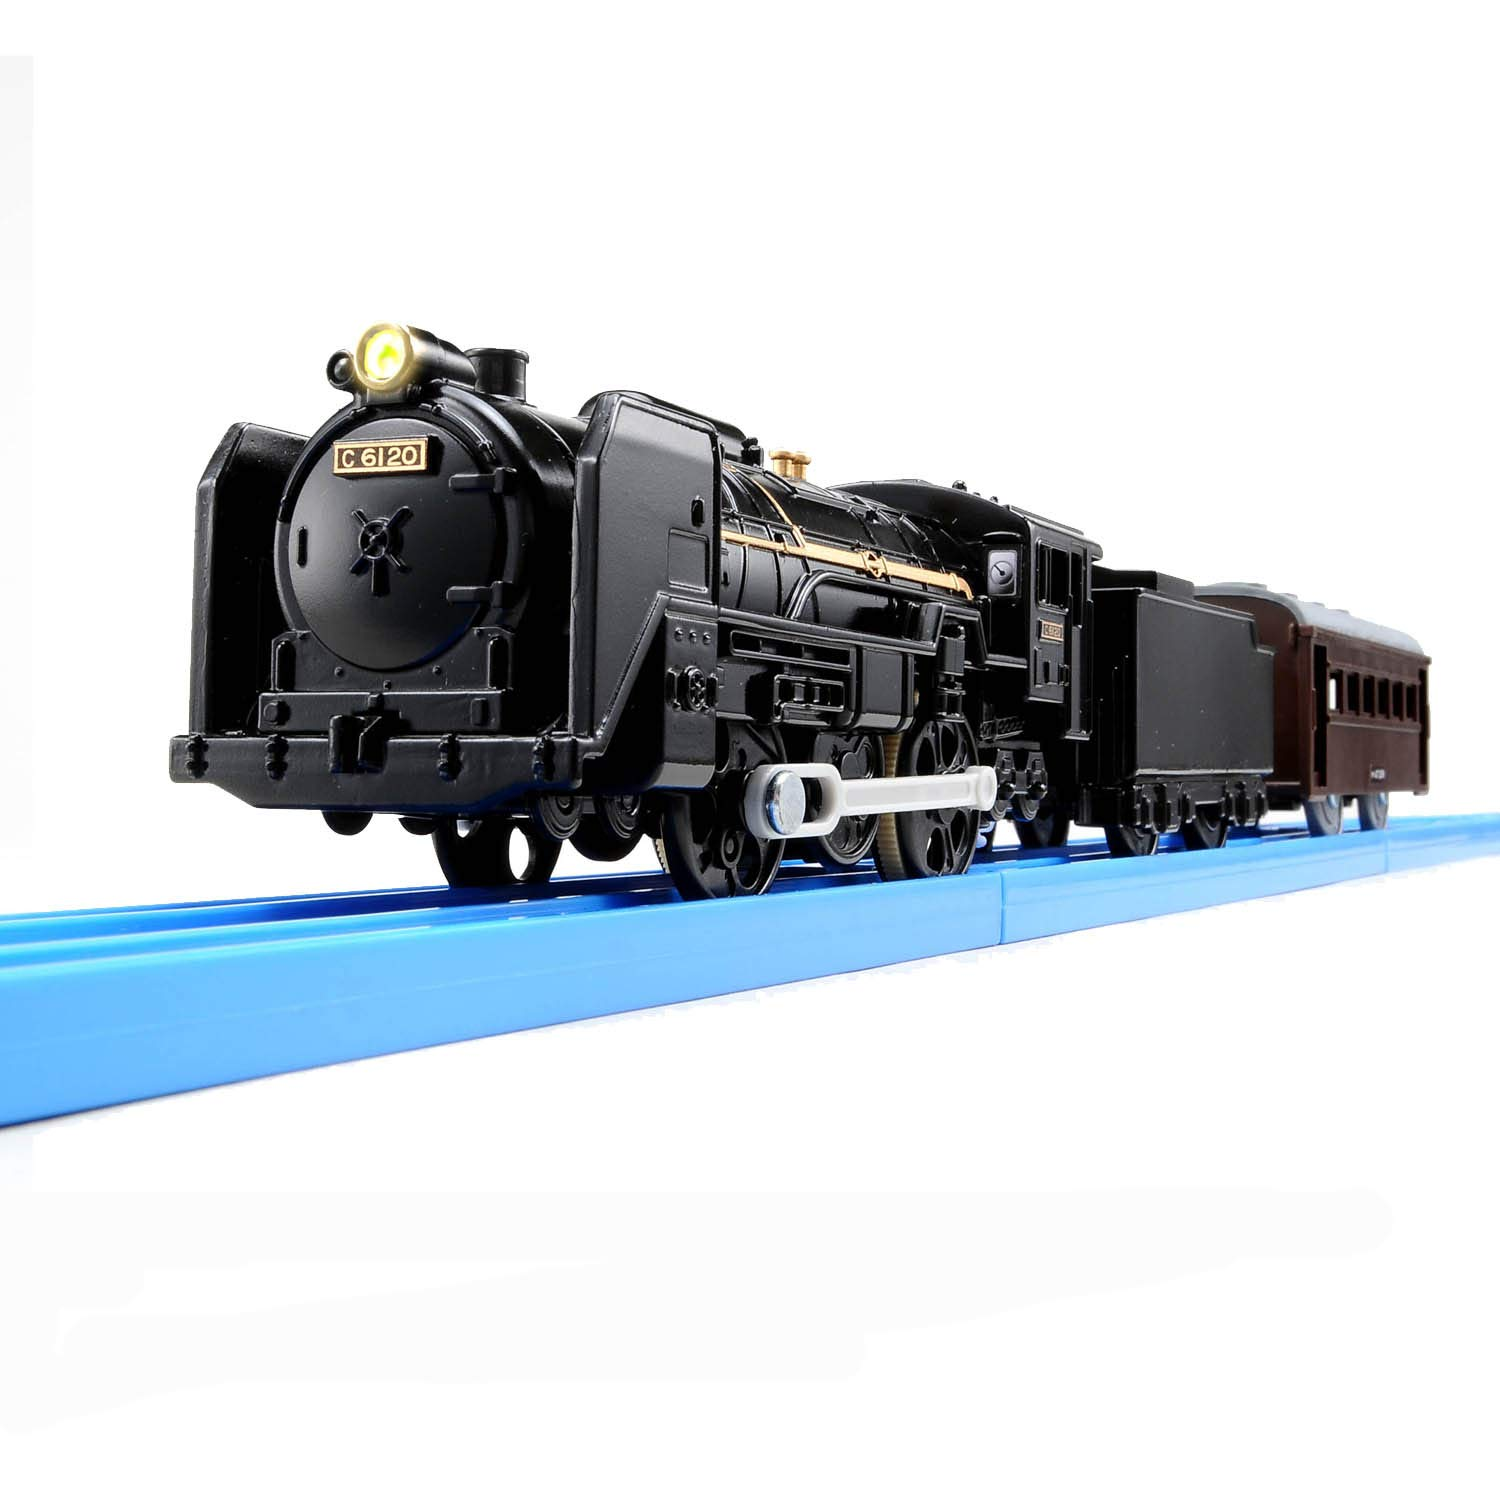 Model Train japan import Tomica PraRail S-02 Series 500 Bullet Train With Light Toy